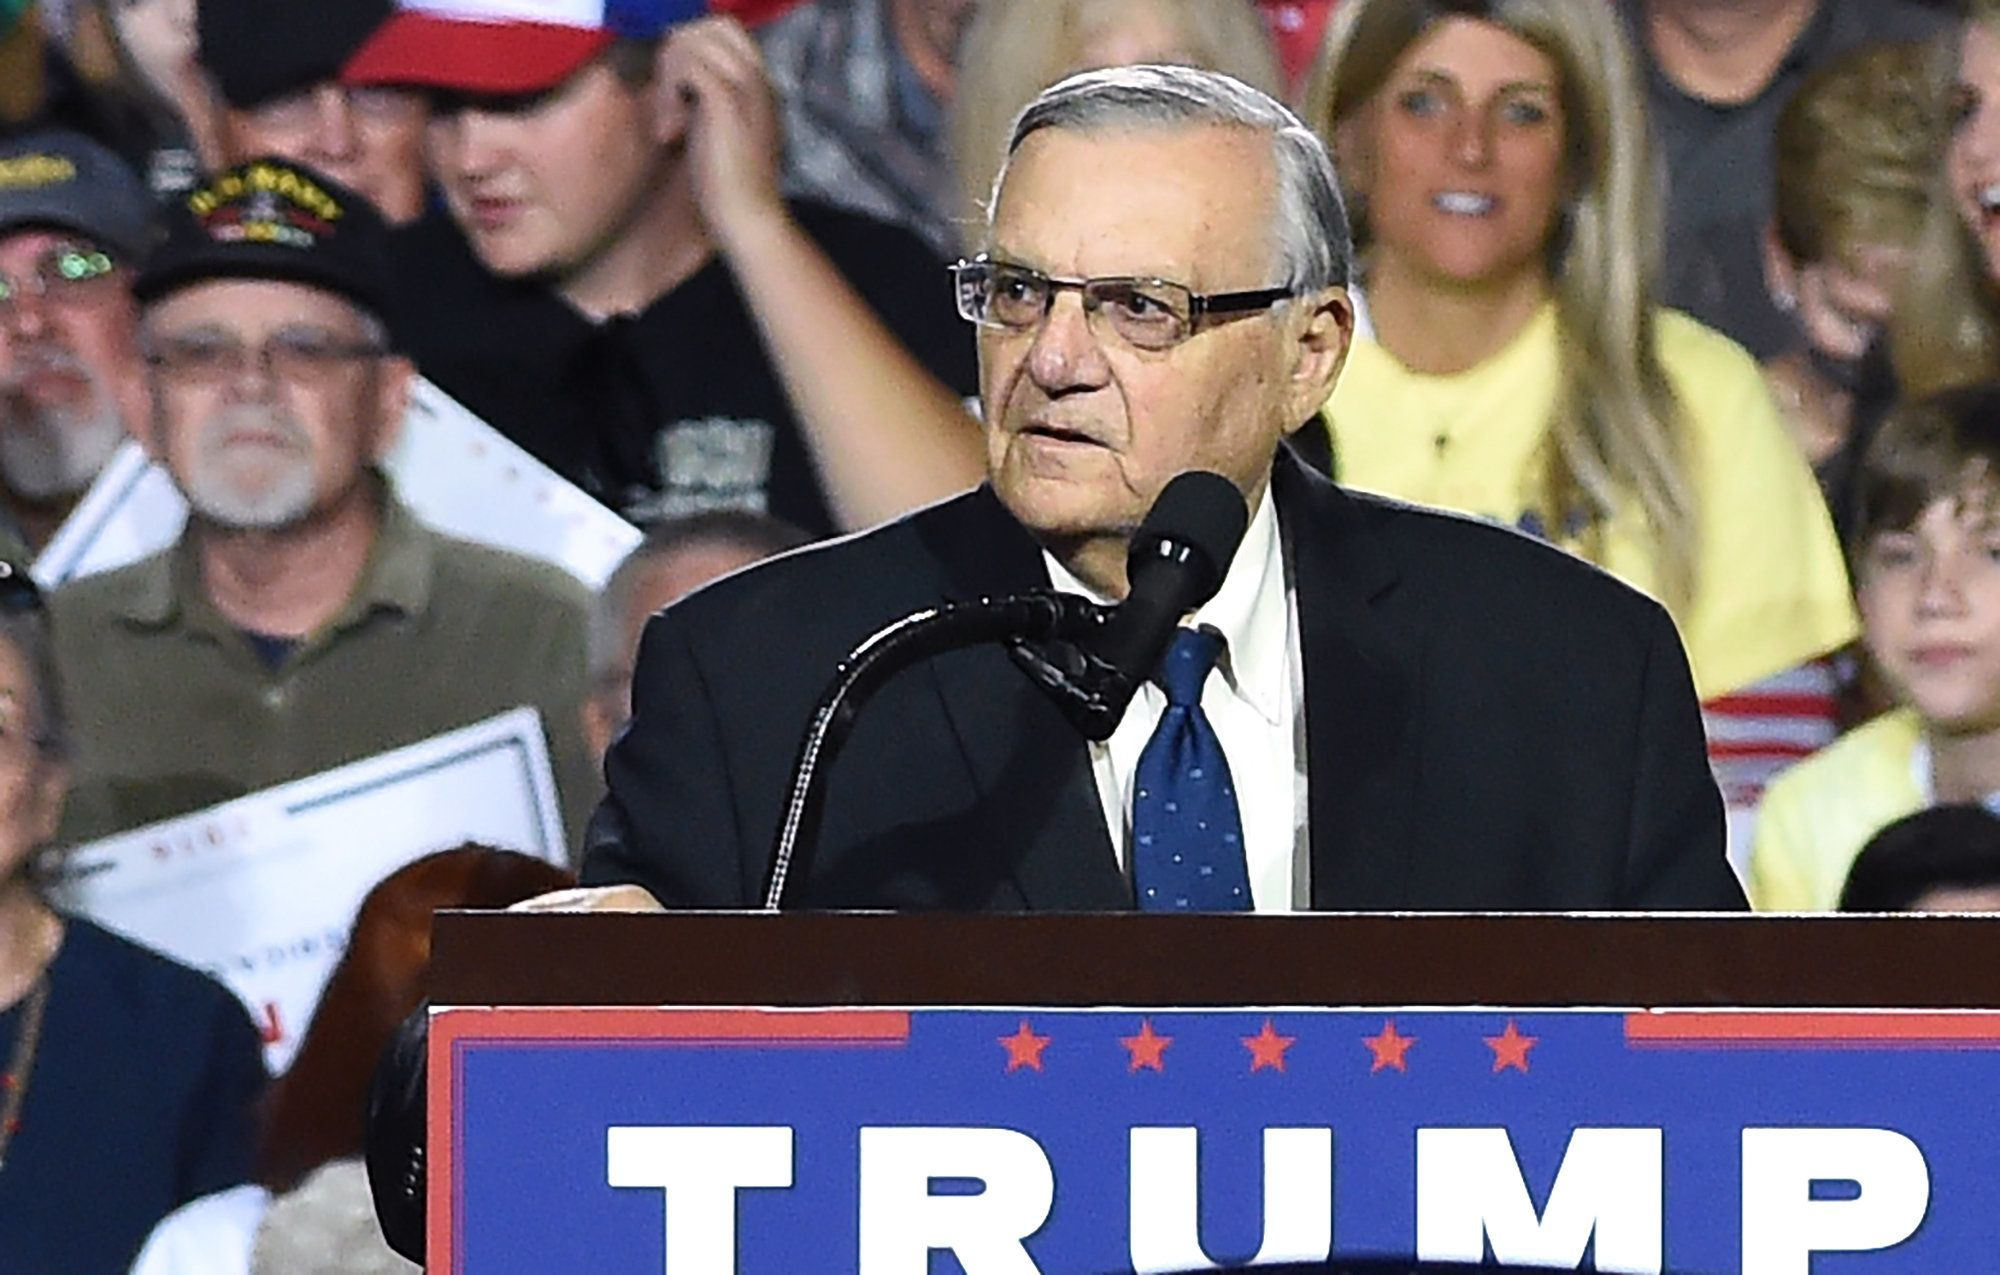 Sheriff Joe Arpaio attends a rally by Republican presidential candidate Donald Trump, October 4, 2016, in Prescott Valley, Arizona. Arpaio will soon face criminal charges from federal prosecutors over his immigration patrols.  Federal prosecutors say they will charge Arpaio with contempt-of-court after he allegedly failed to obey a judges order to halt controversial immigration policies that some say include racial profiling.  / AFP / Robyn Beck        (Photo credit should read ROBYN BECK/AFP/Getty Images)